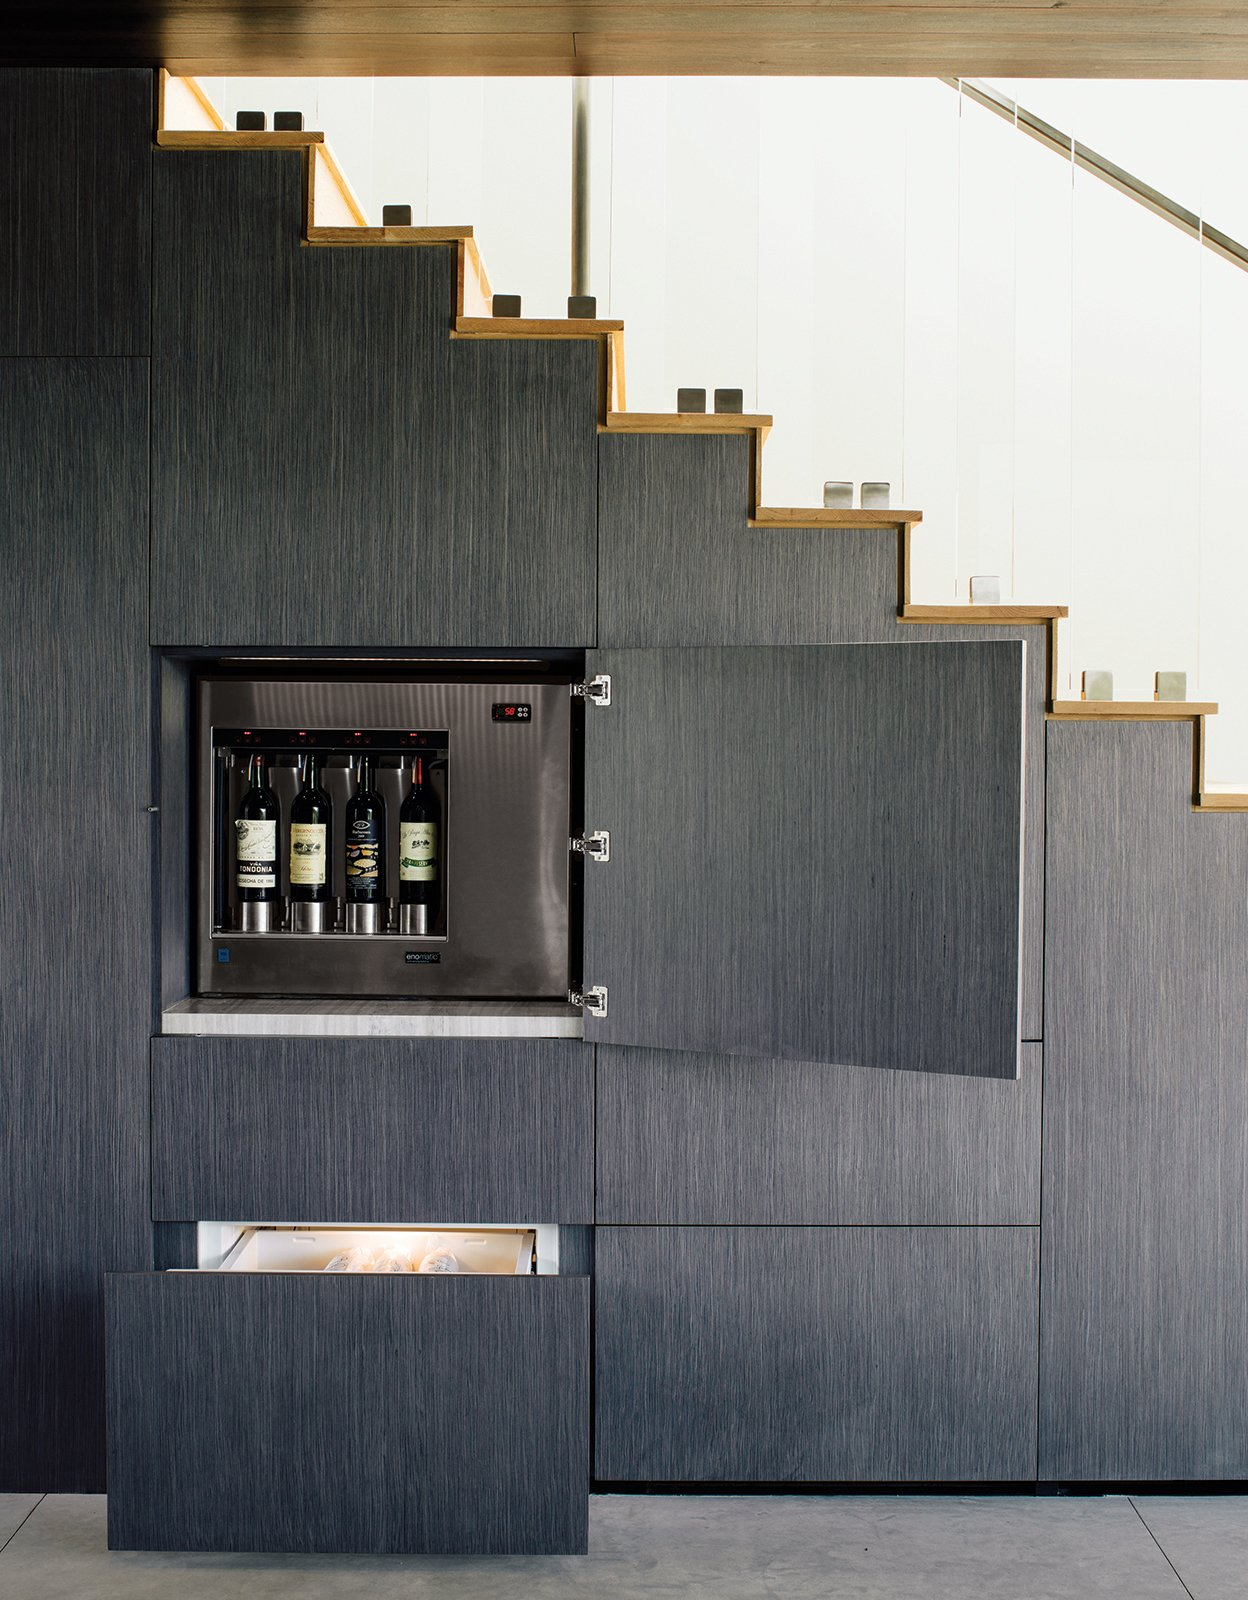 Photo caption: The wall beneath the stairs of this Beverly Hills home holds hidden storage, including an Enomatic wine dispenser and Sub-Zero refrigerated drawers. 10 Clever Ways to Sneak Storage Into Your Renovation - Photo 8 of 10